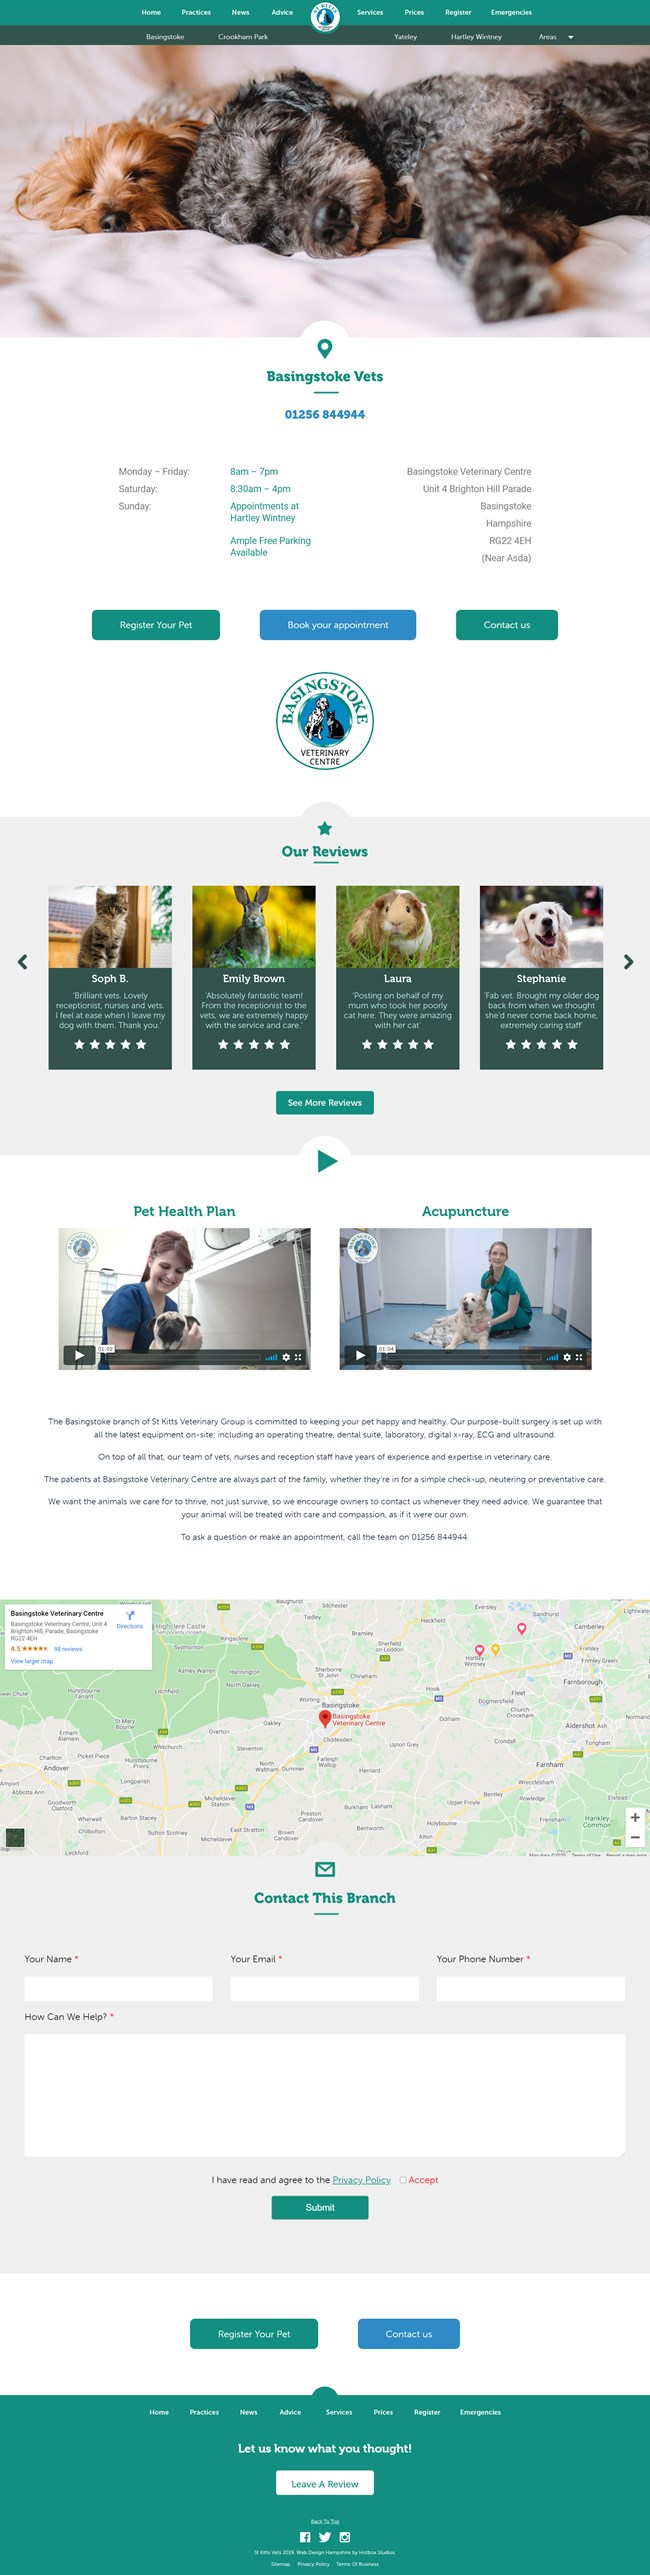 St Kitts Vet Website Design and WordPress Web Development SP004 Practices Basingstoke Vets